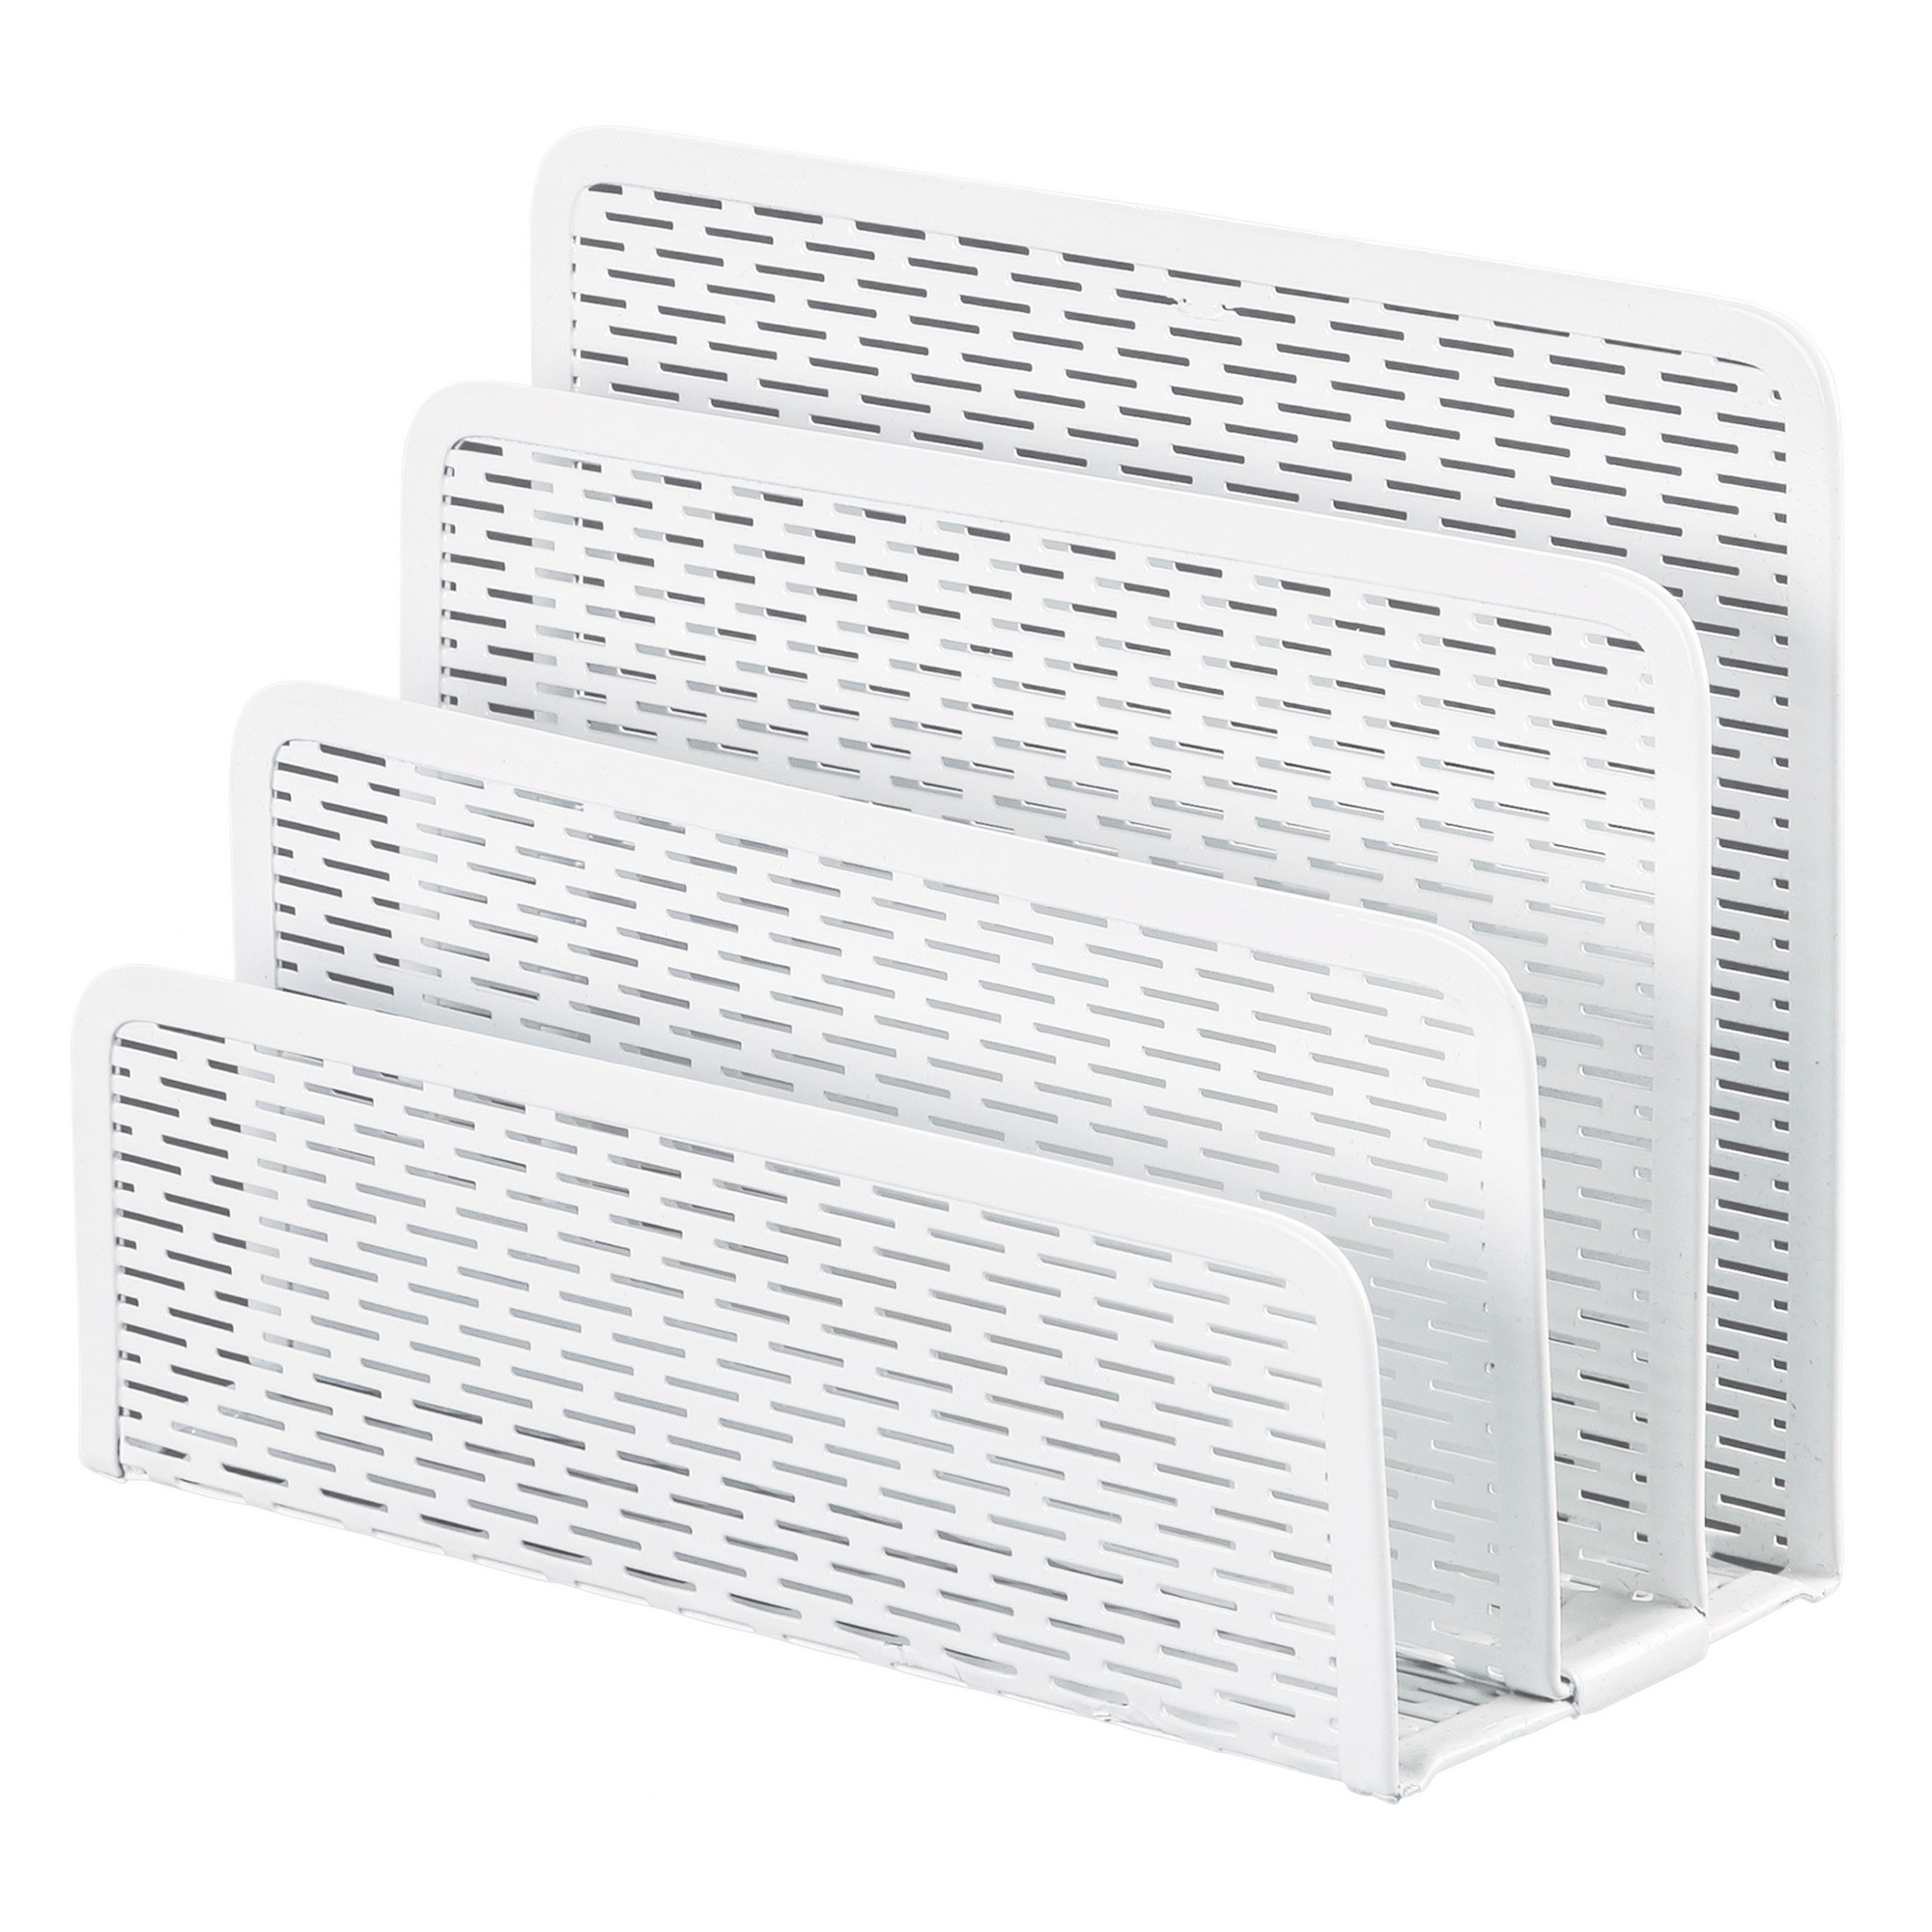 Artistic Urban Collection Punched Metal Letter Sorter, 6 1